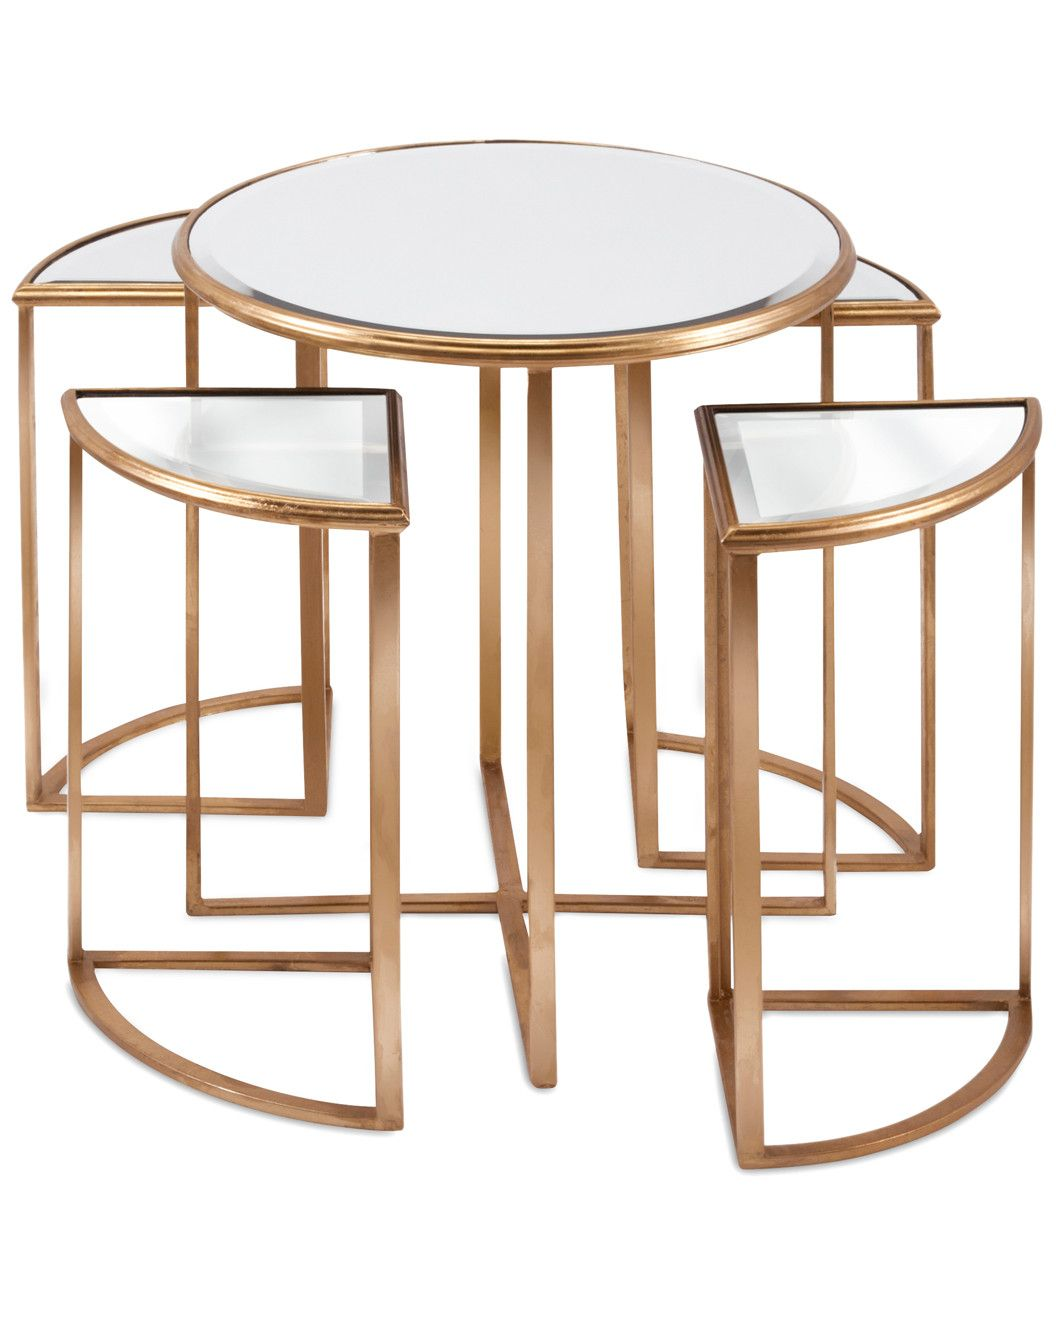 spotted this set limba mirror accent tables rue with matching mirrors quickly pier patio table legs studded dining chairs umbrella carved wood side outdoor sofa nate berkus sheets